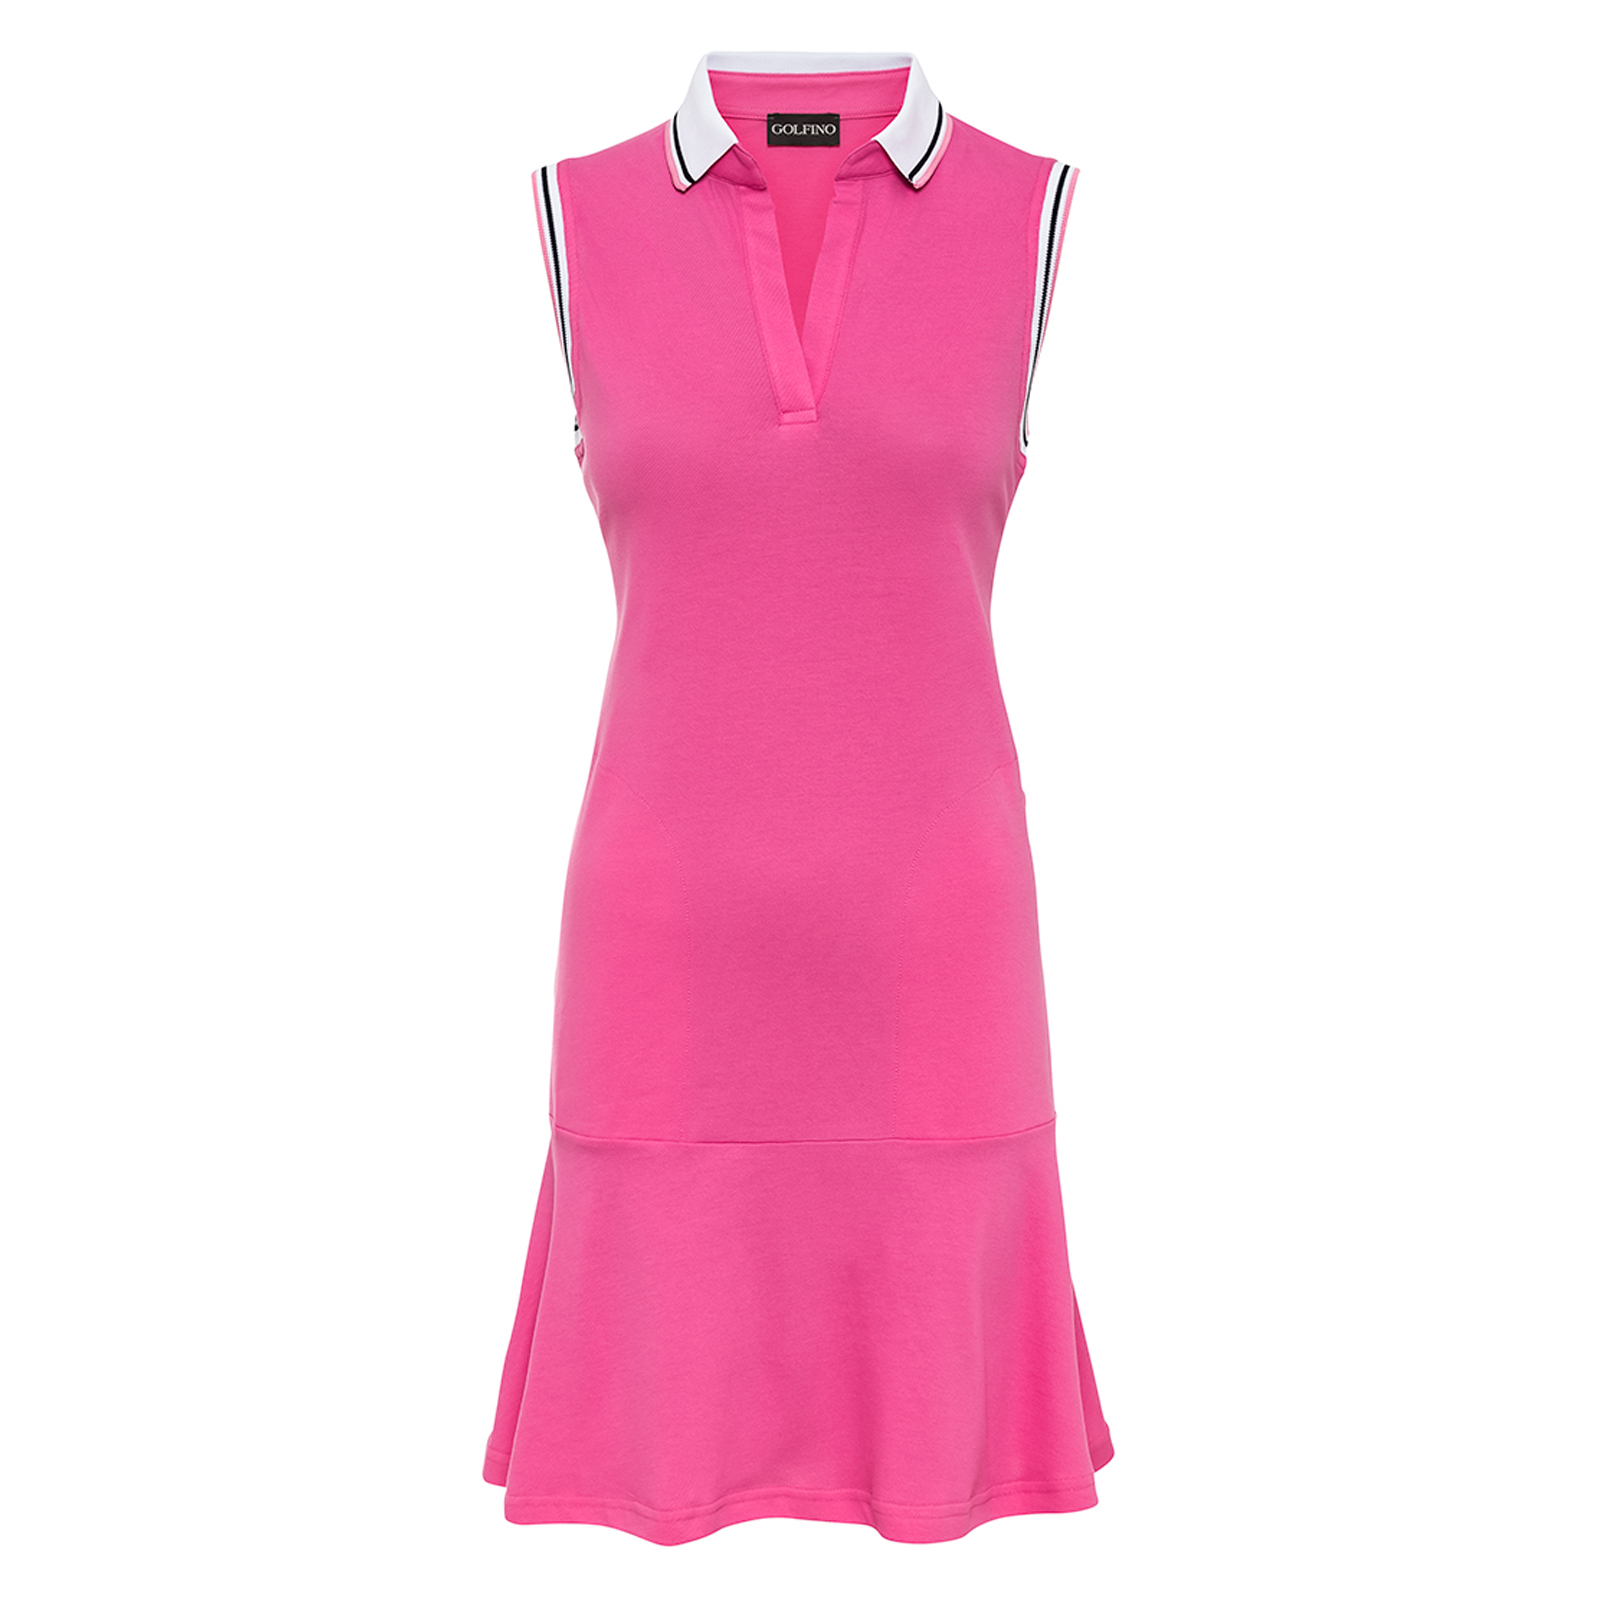 Ärmelloses Damen Golfkleid Extra Stretch Komfort in Slim Fit aus Baumwoll-Mix